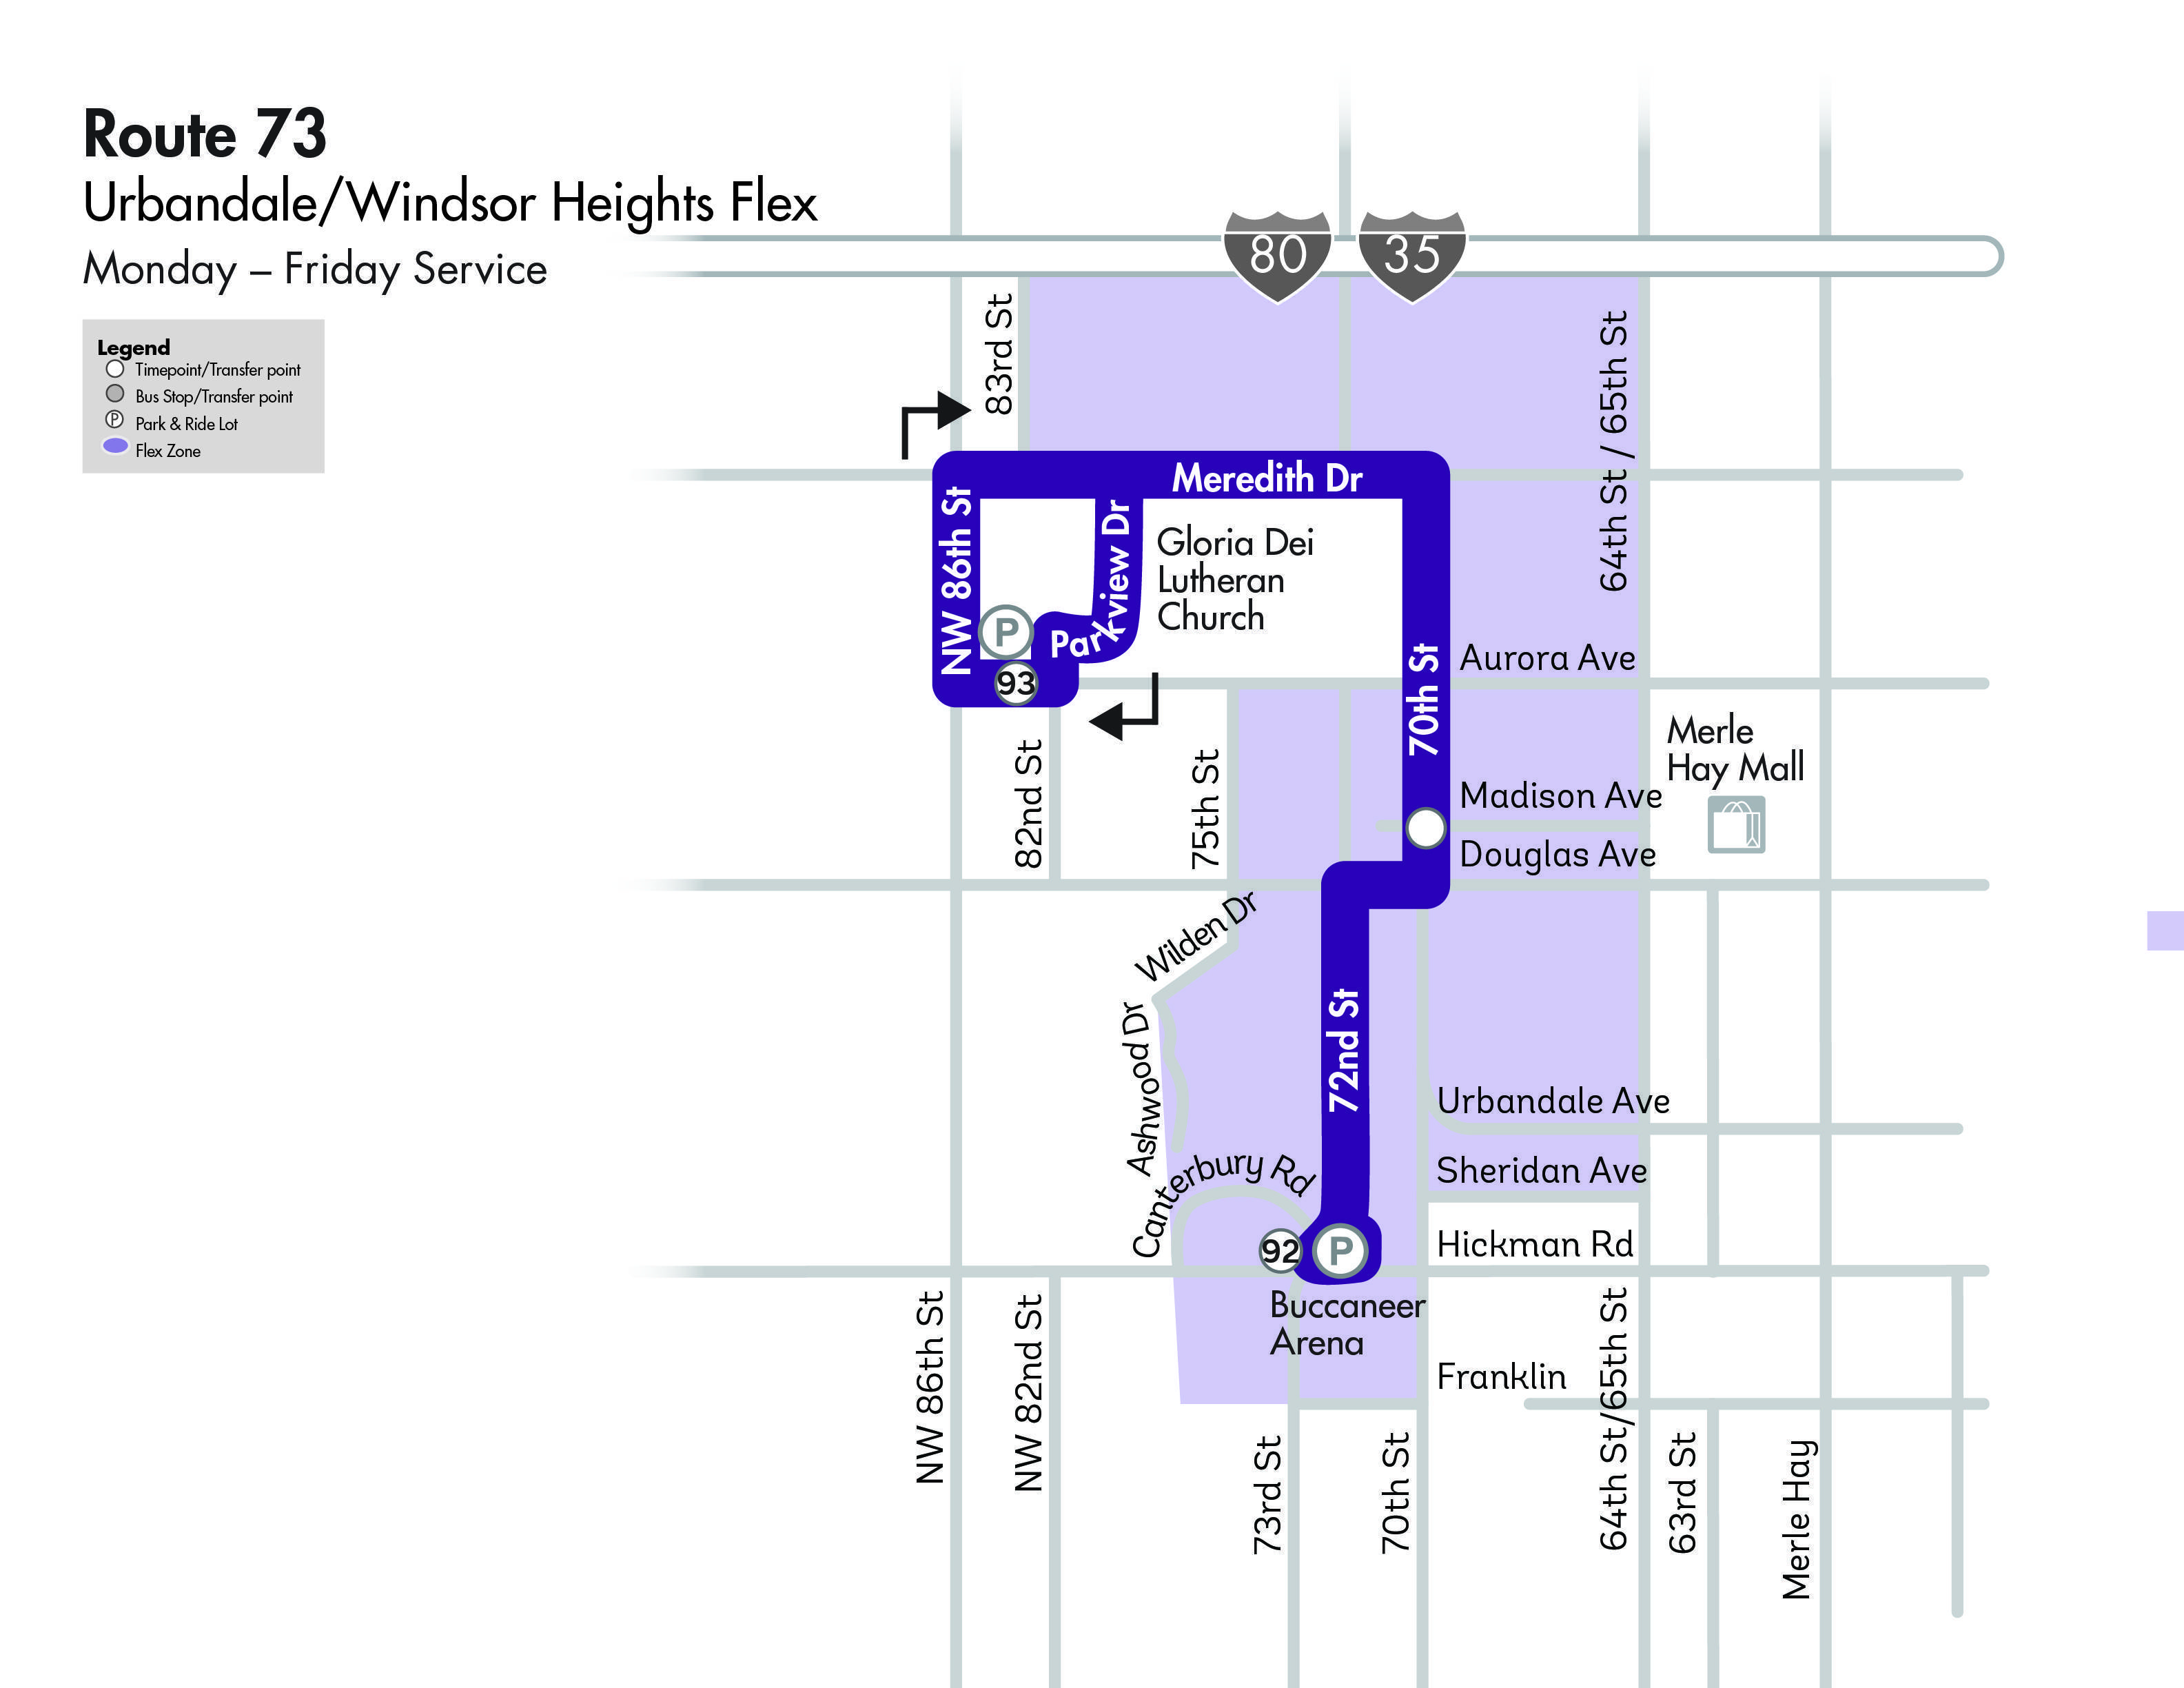 DART Flex Route 73 - Urbandale/Windsor Heights Map